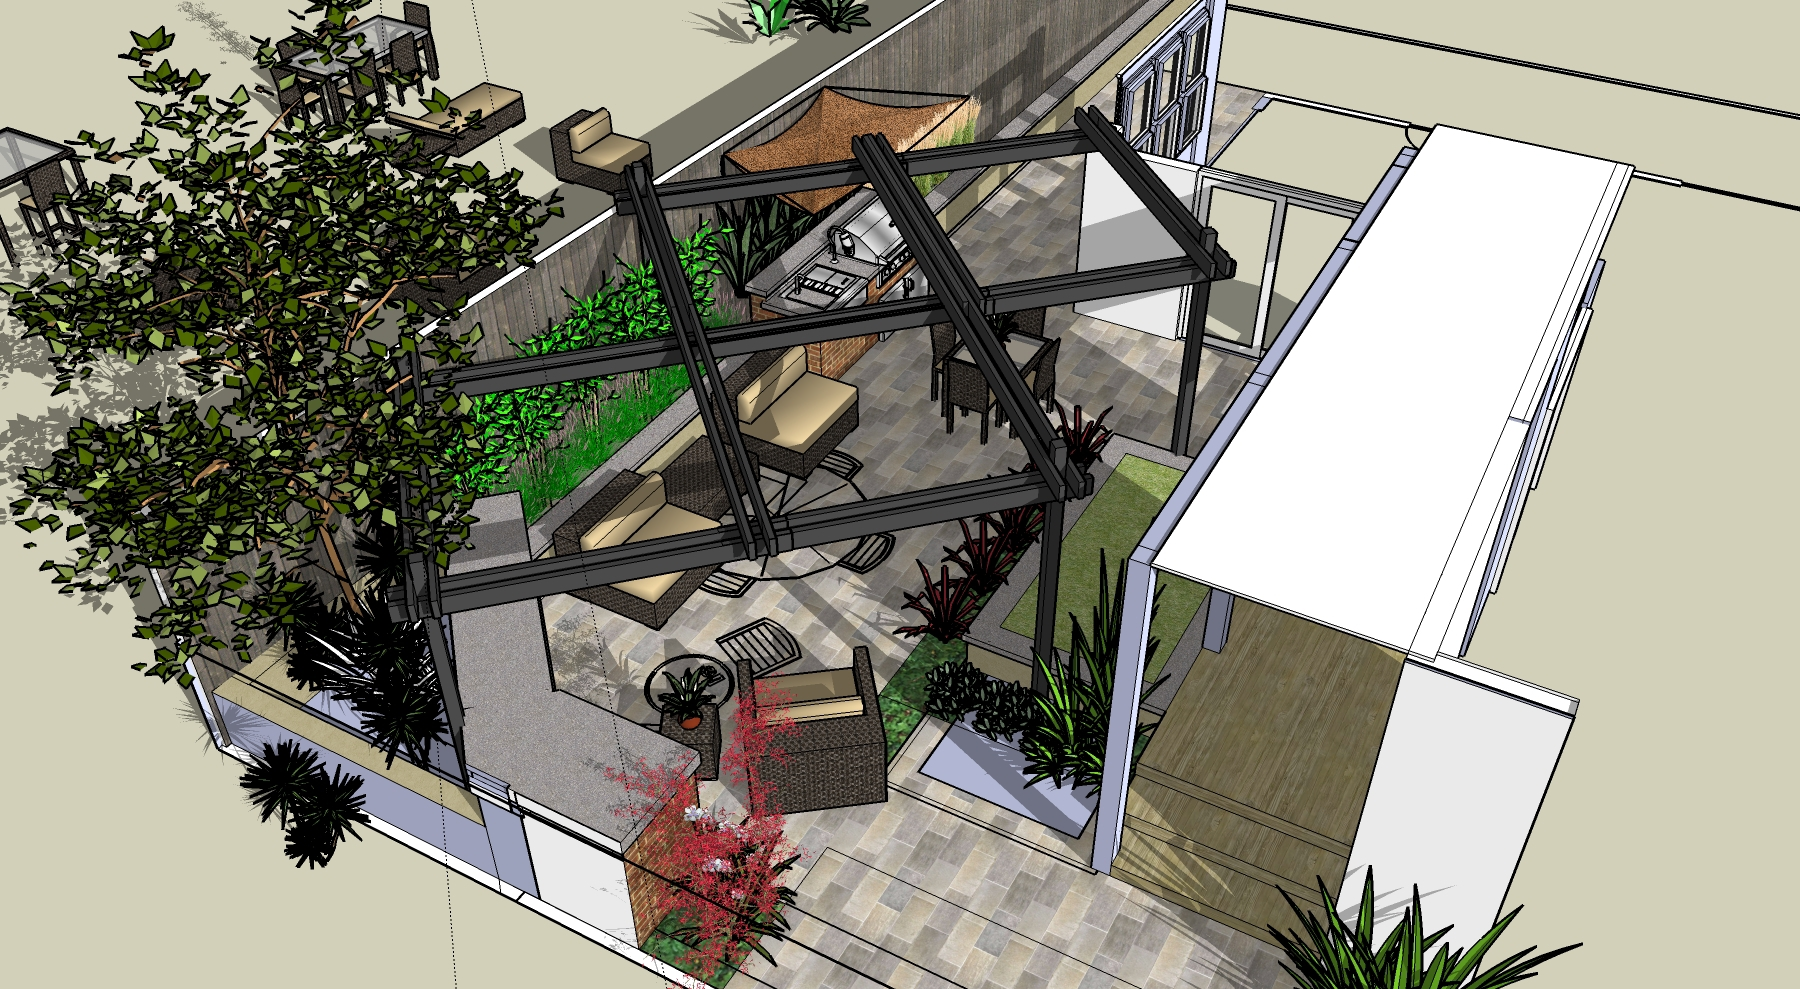 A BIRD'S EYE VIEW PROVIDES AN OVERHEAD LOOK AT THE DESIGN INTENT AND GIVES THE CLIENT A VISUAL REPRESENTATION.